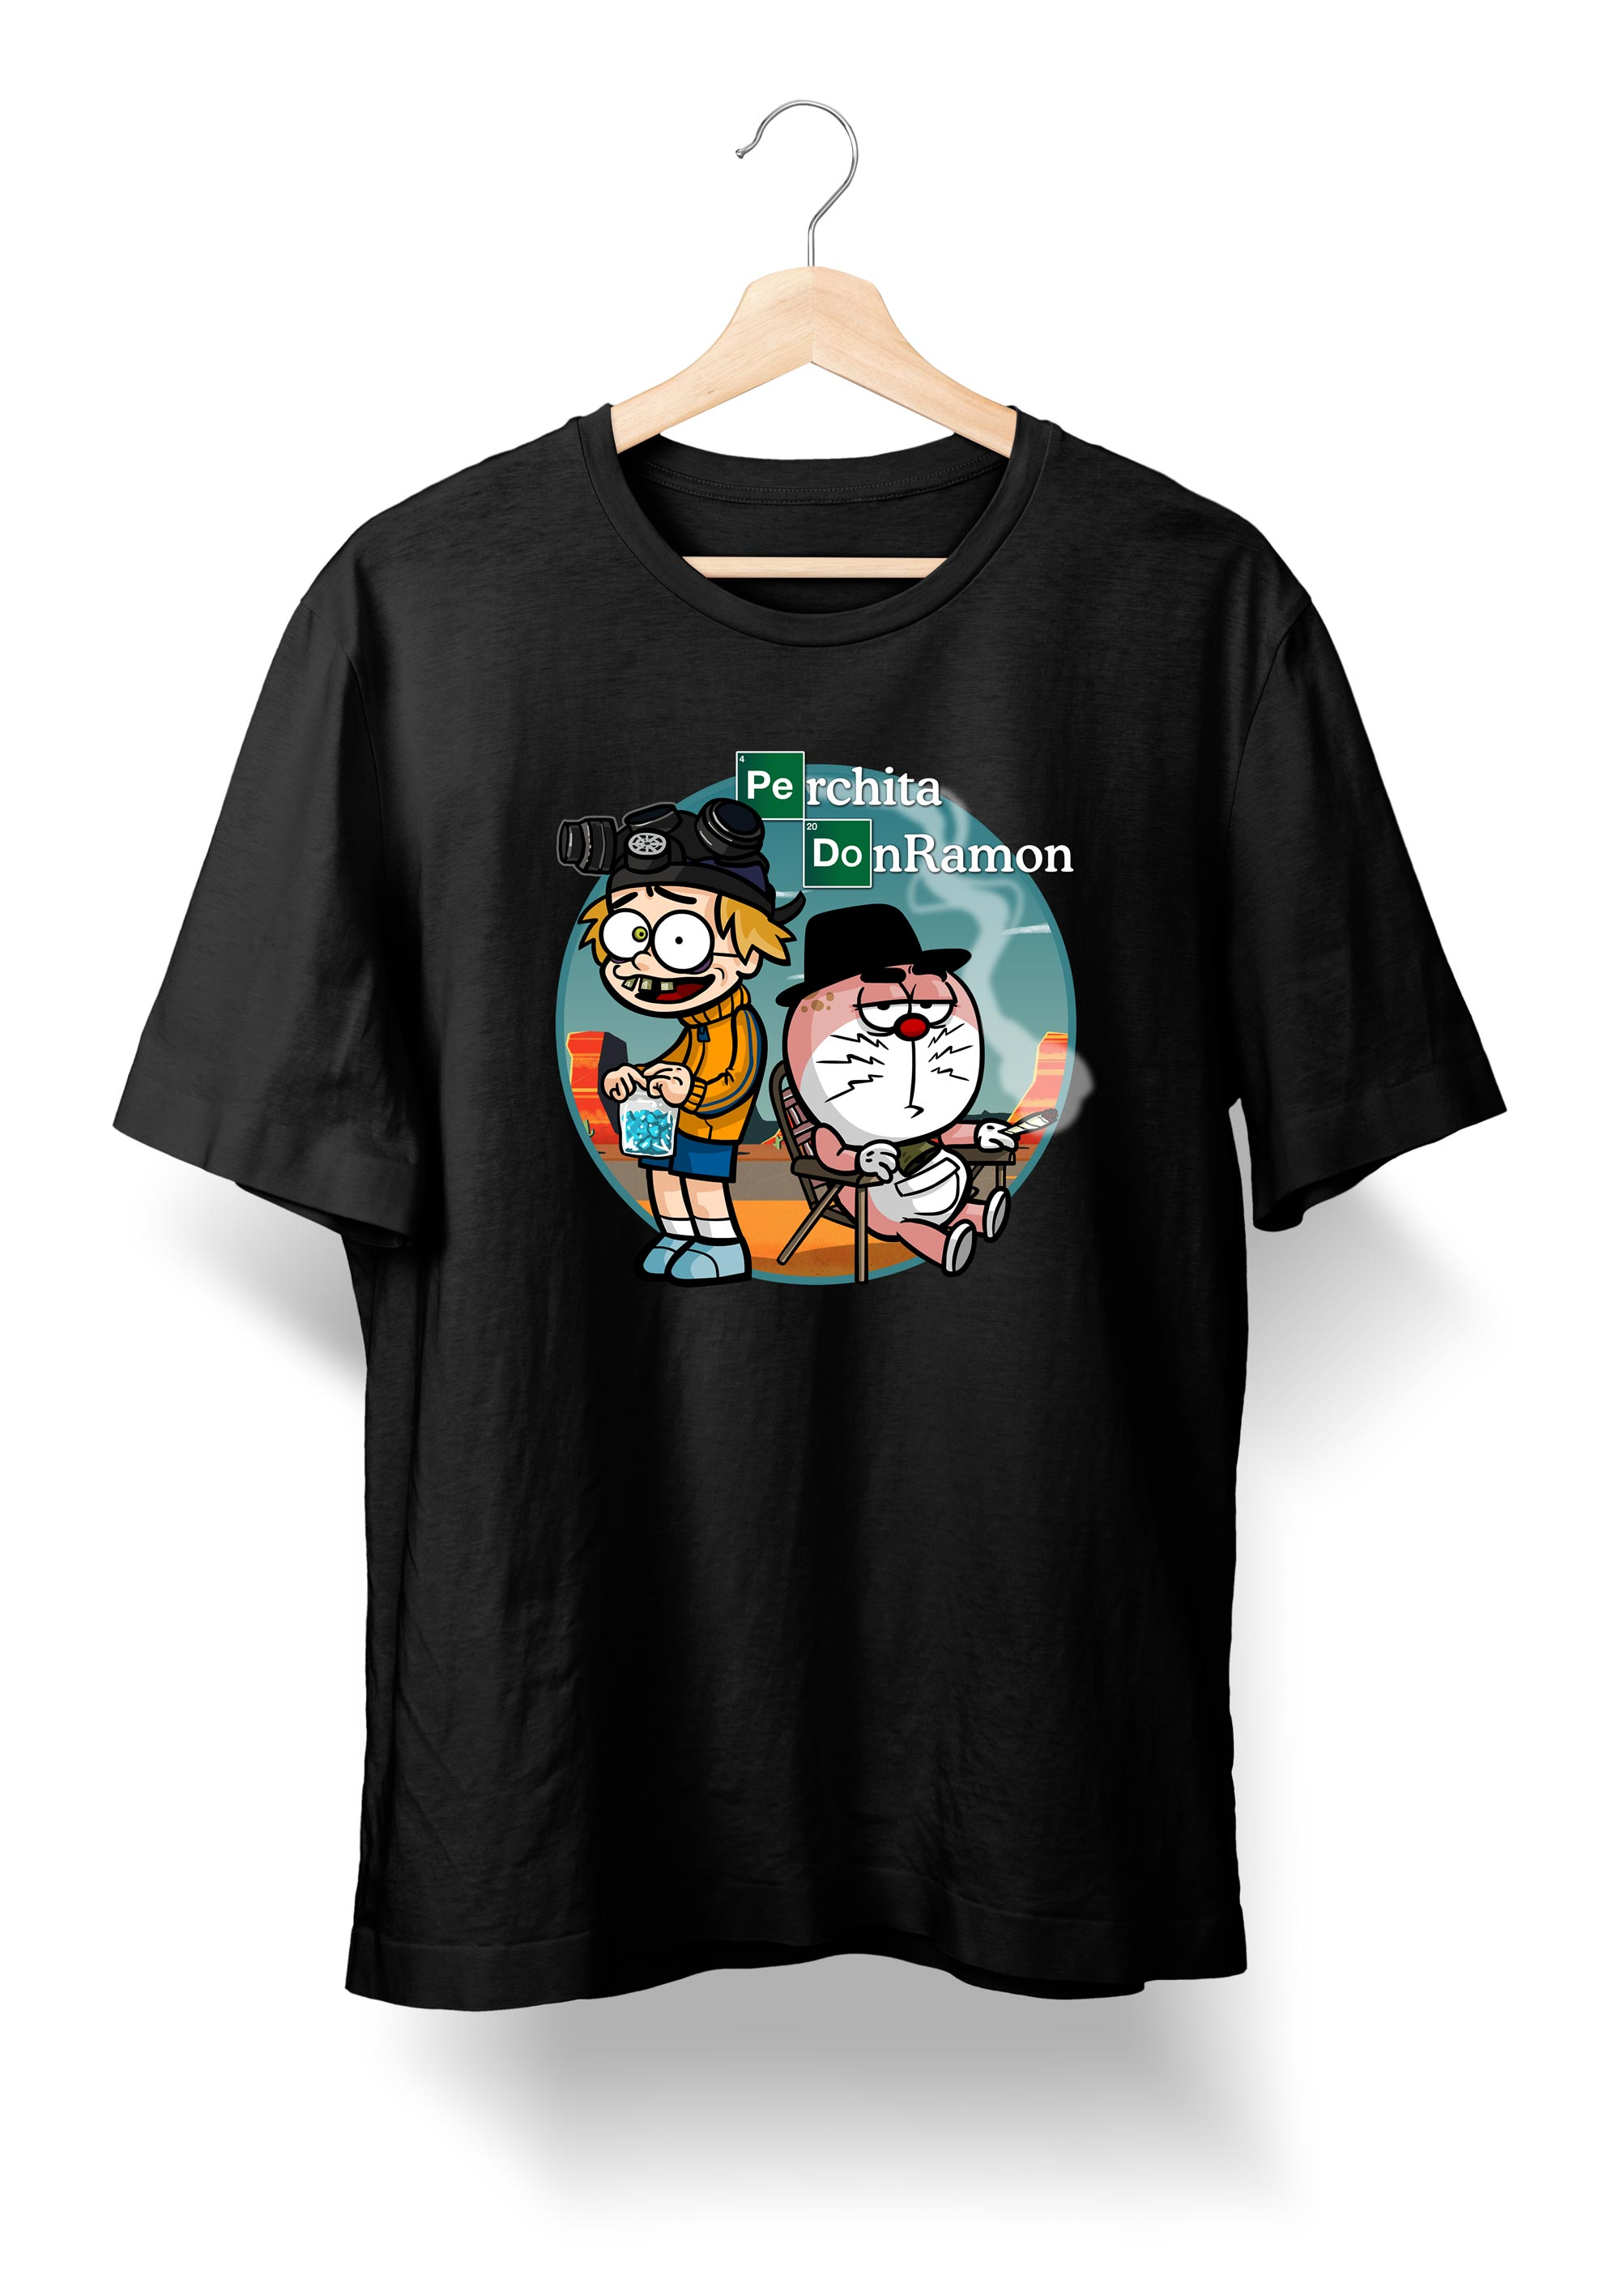 Camiseta de Breaking Bad - DonRamon y Perchita - Tienda Oficial